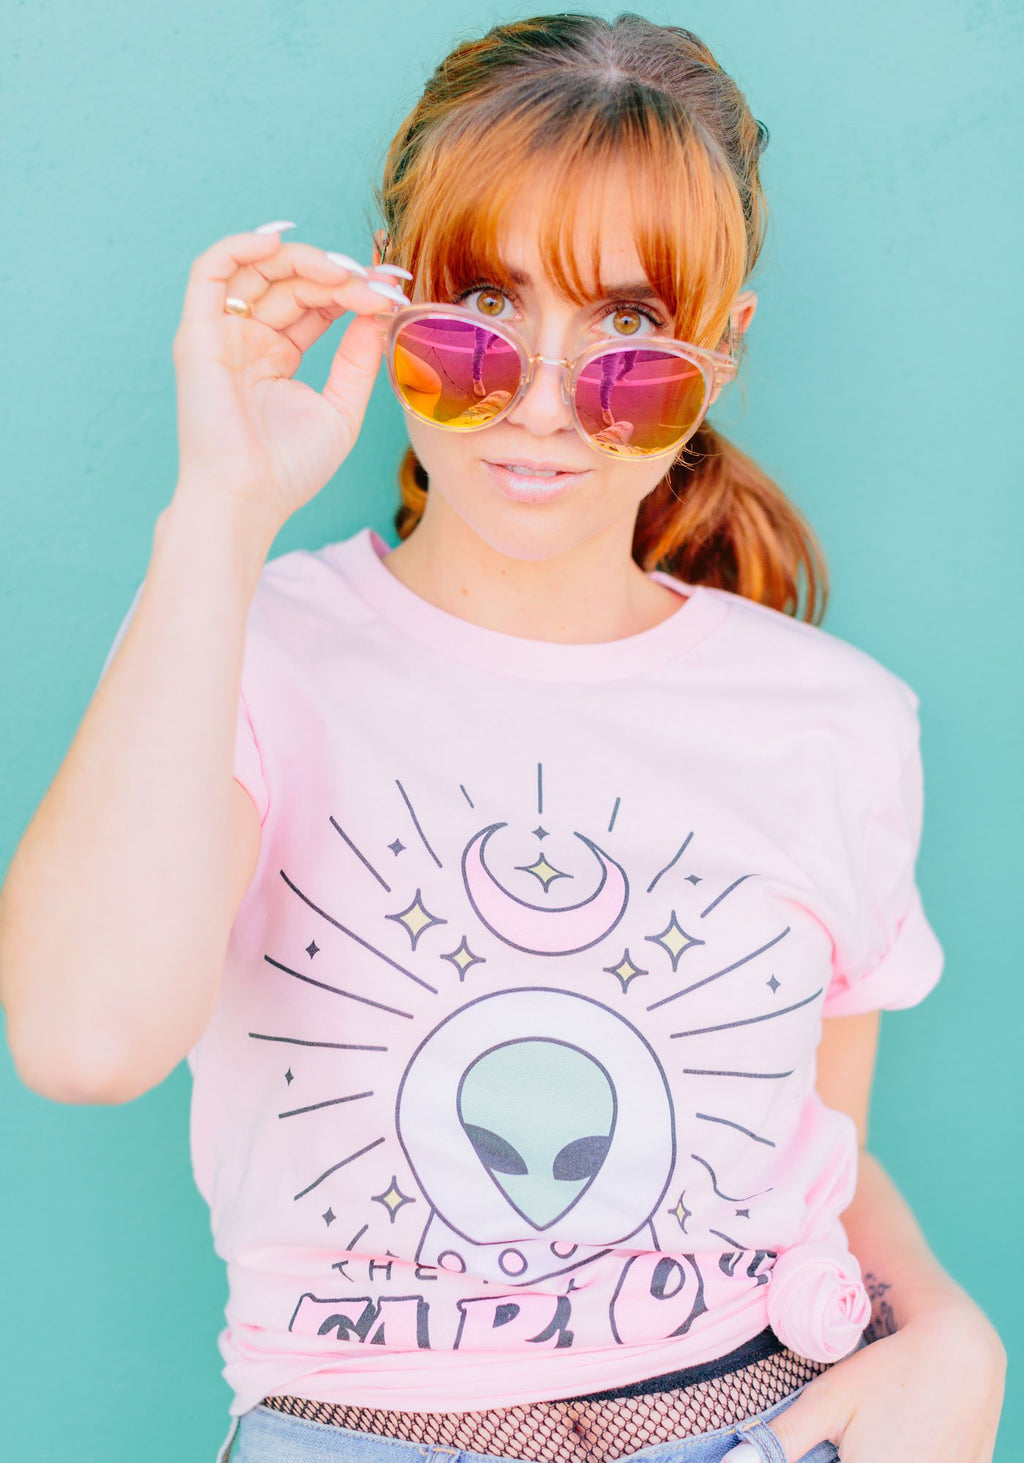 Far Out Future Tee / womens graphic tees/ psychic ufo alien/ pastel goth tshirt / witch witchy clothing / palm reader fortune teller